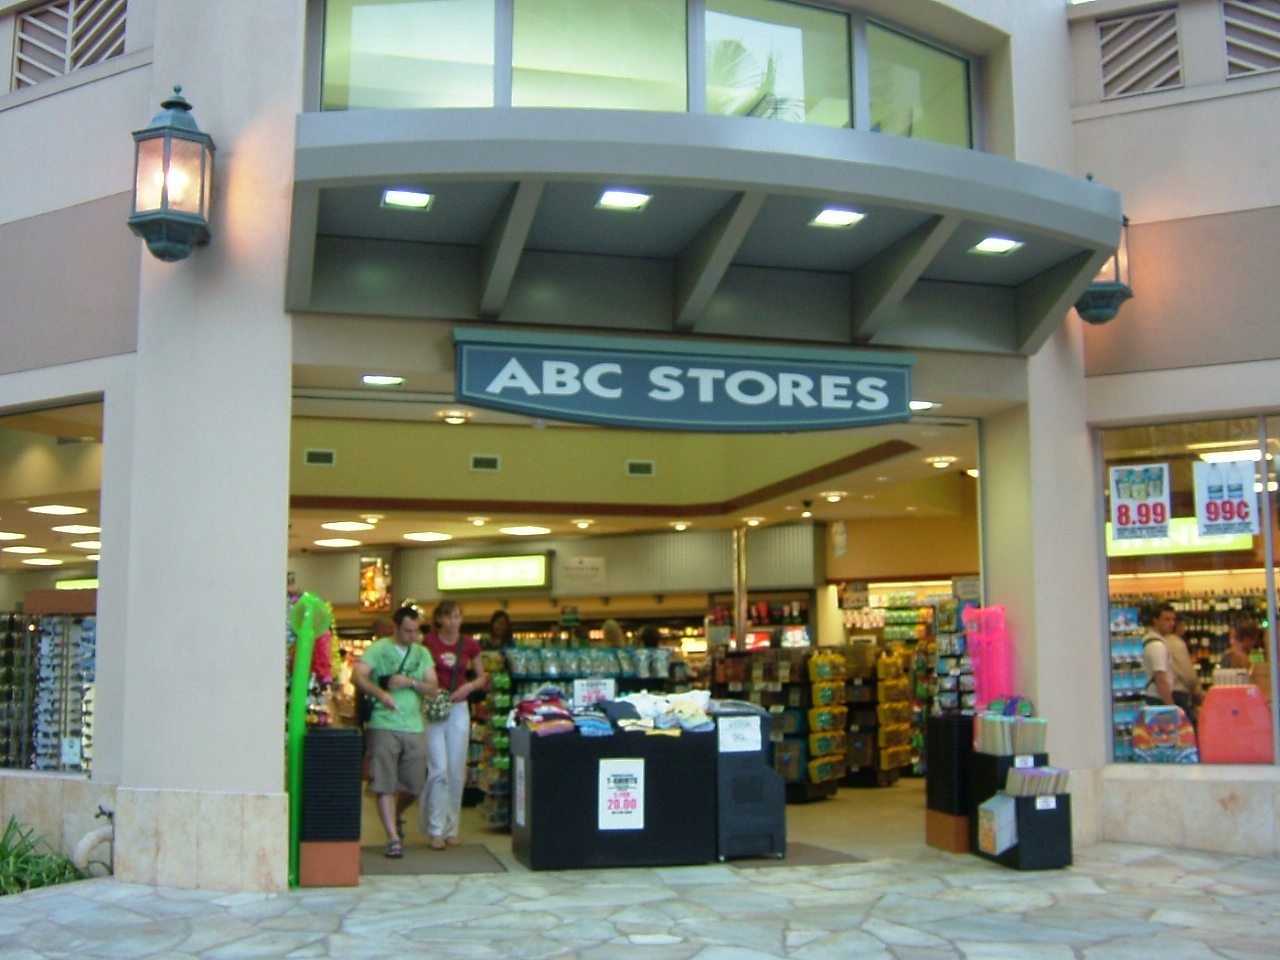 Follow ABC Stores on Facebook, Twitter, and Pinterest to keep up with their latest products, as well as their savings offers, promotional codes, sale events, Hawaii-inspired gear .